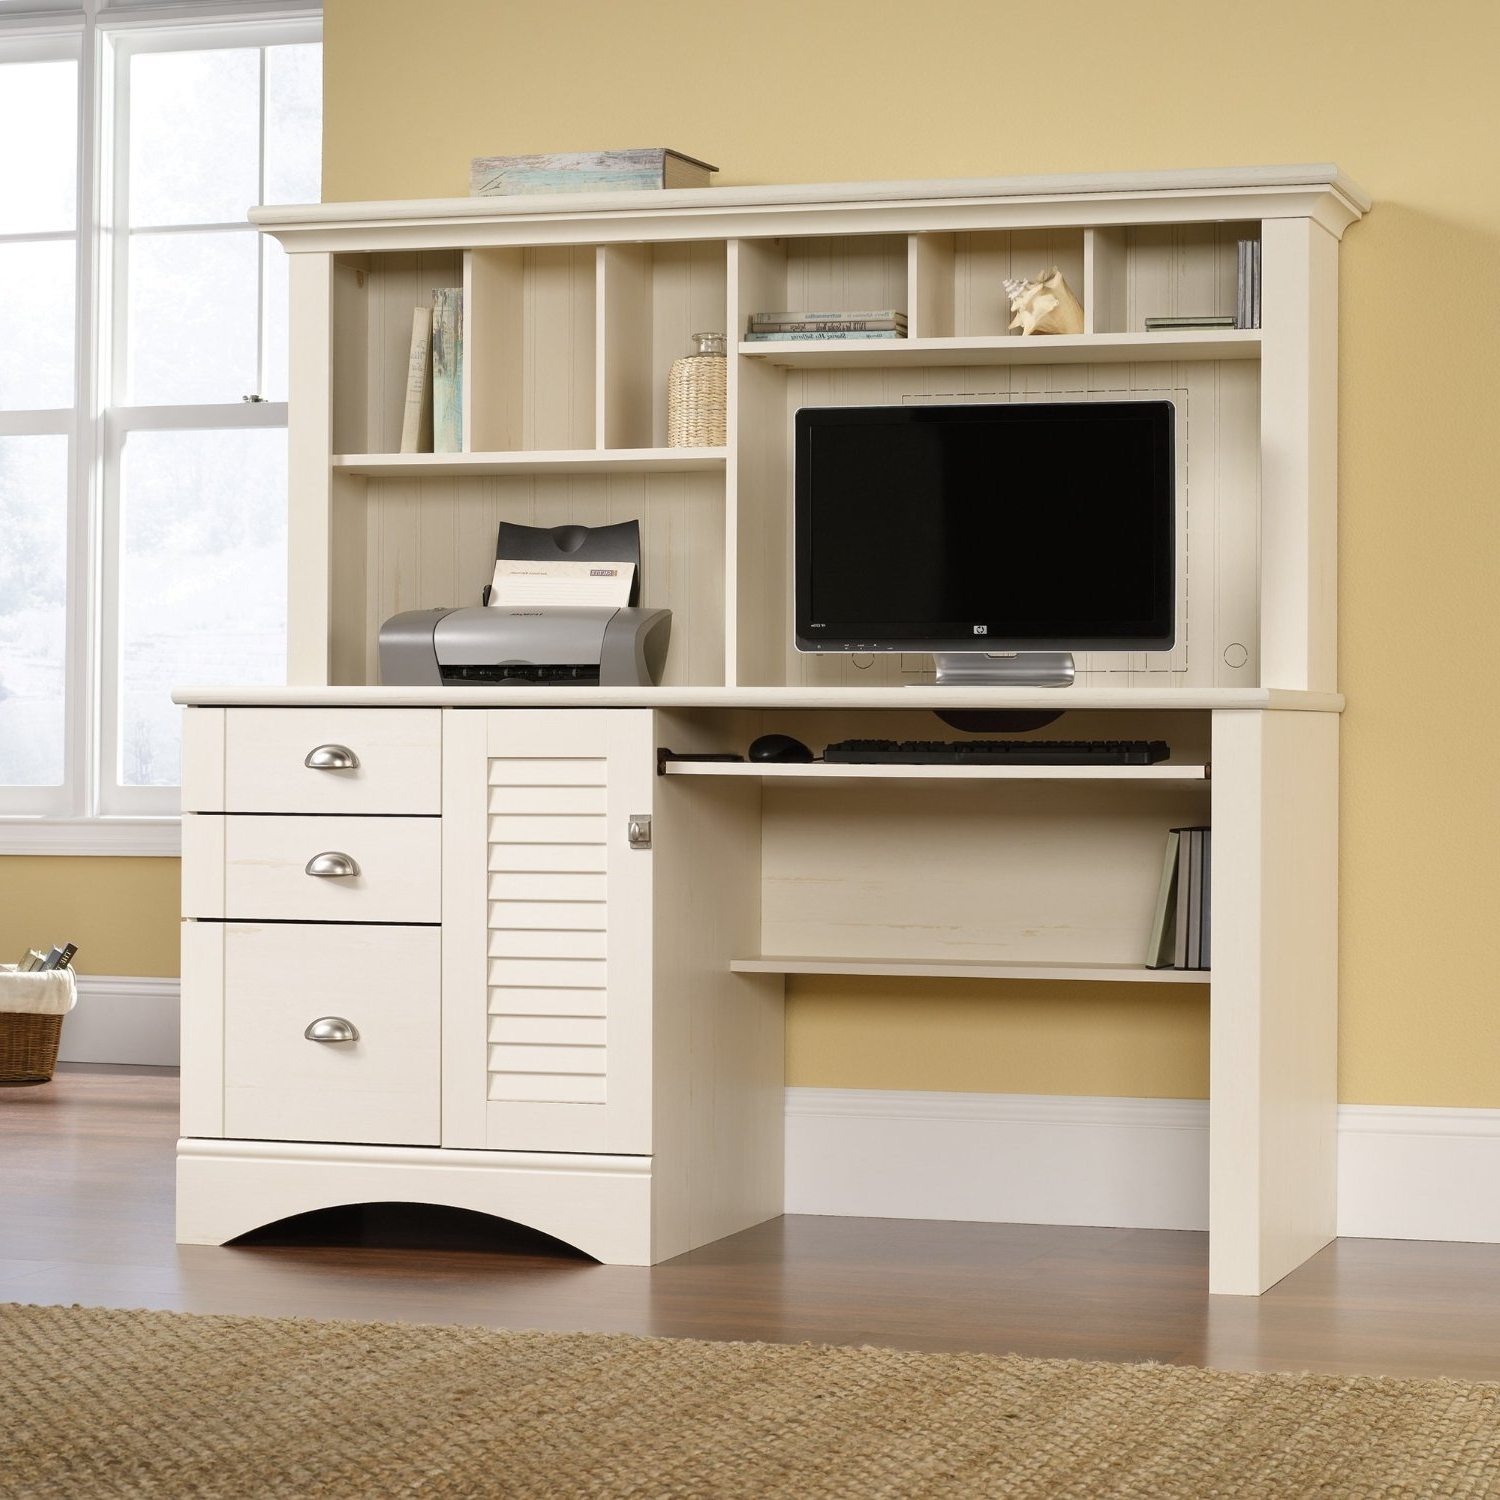 Computer Desk For Small Spaces — All Storage Bed (View 3 of 20)